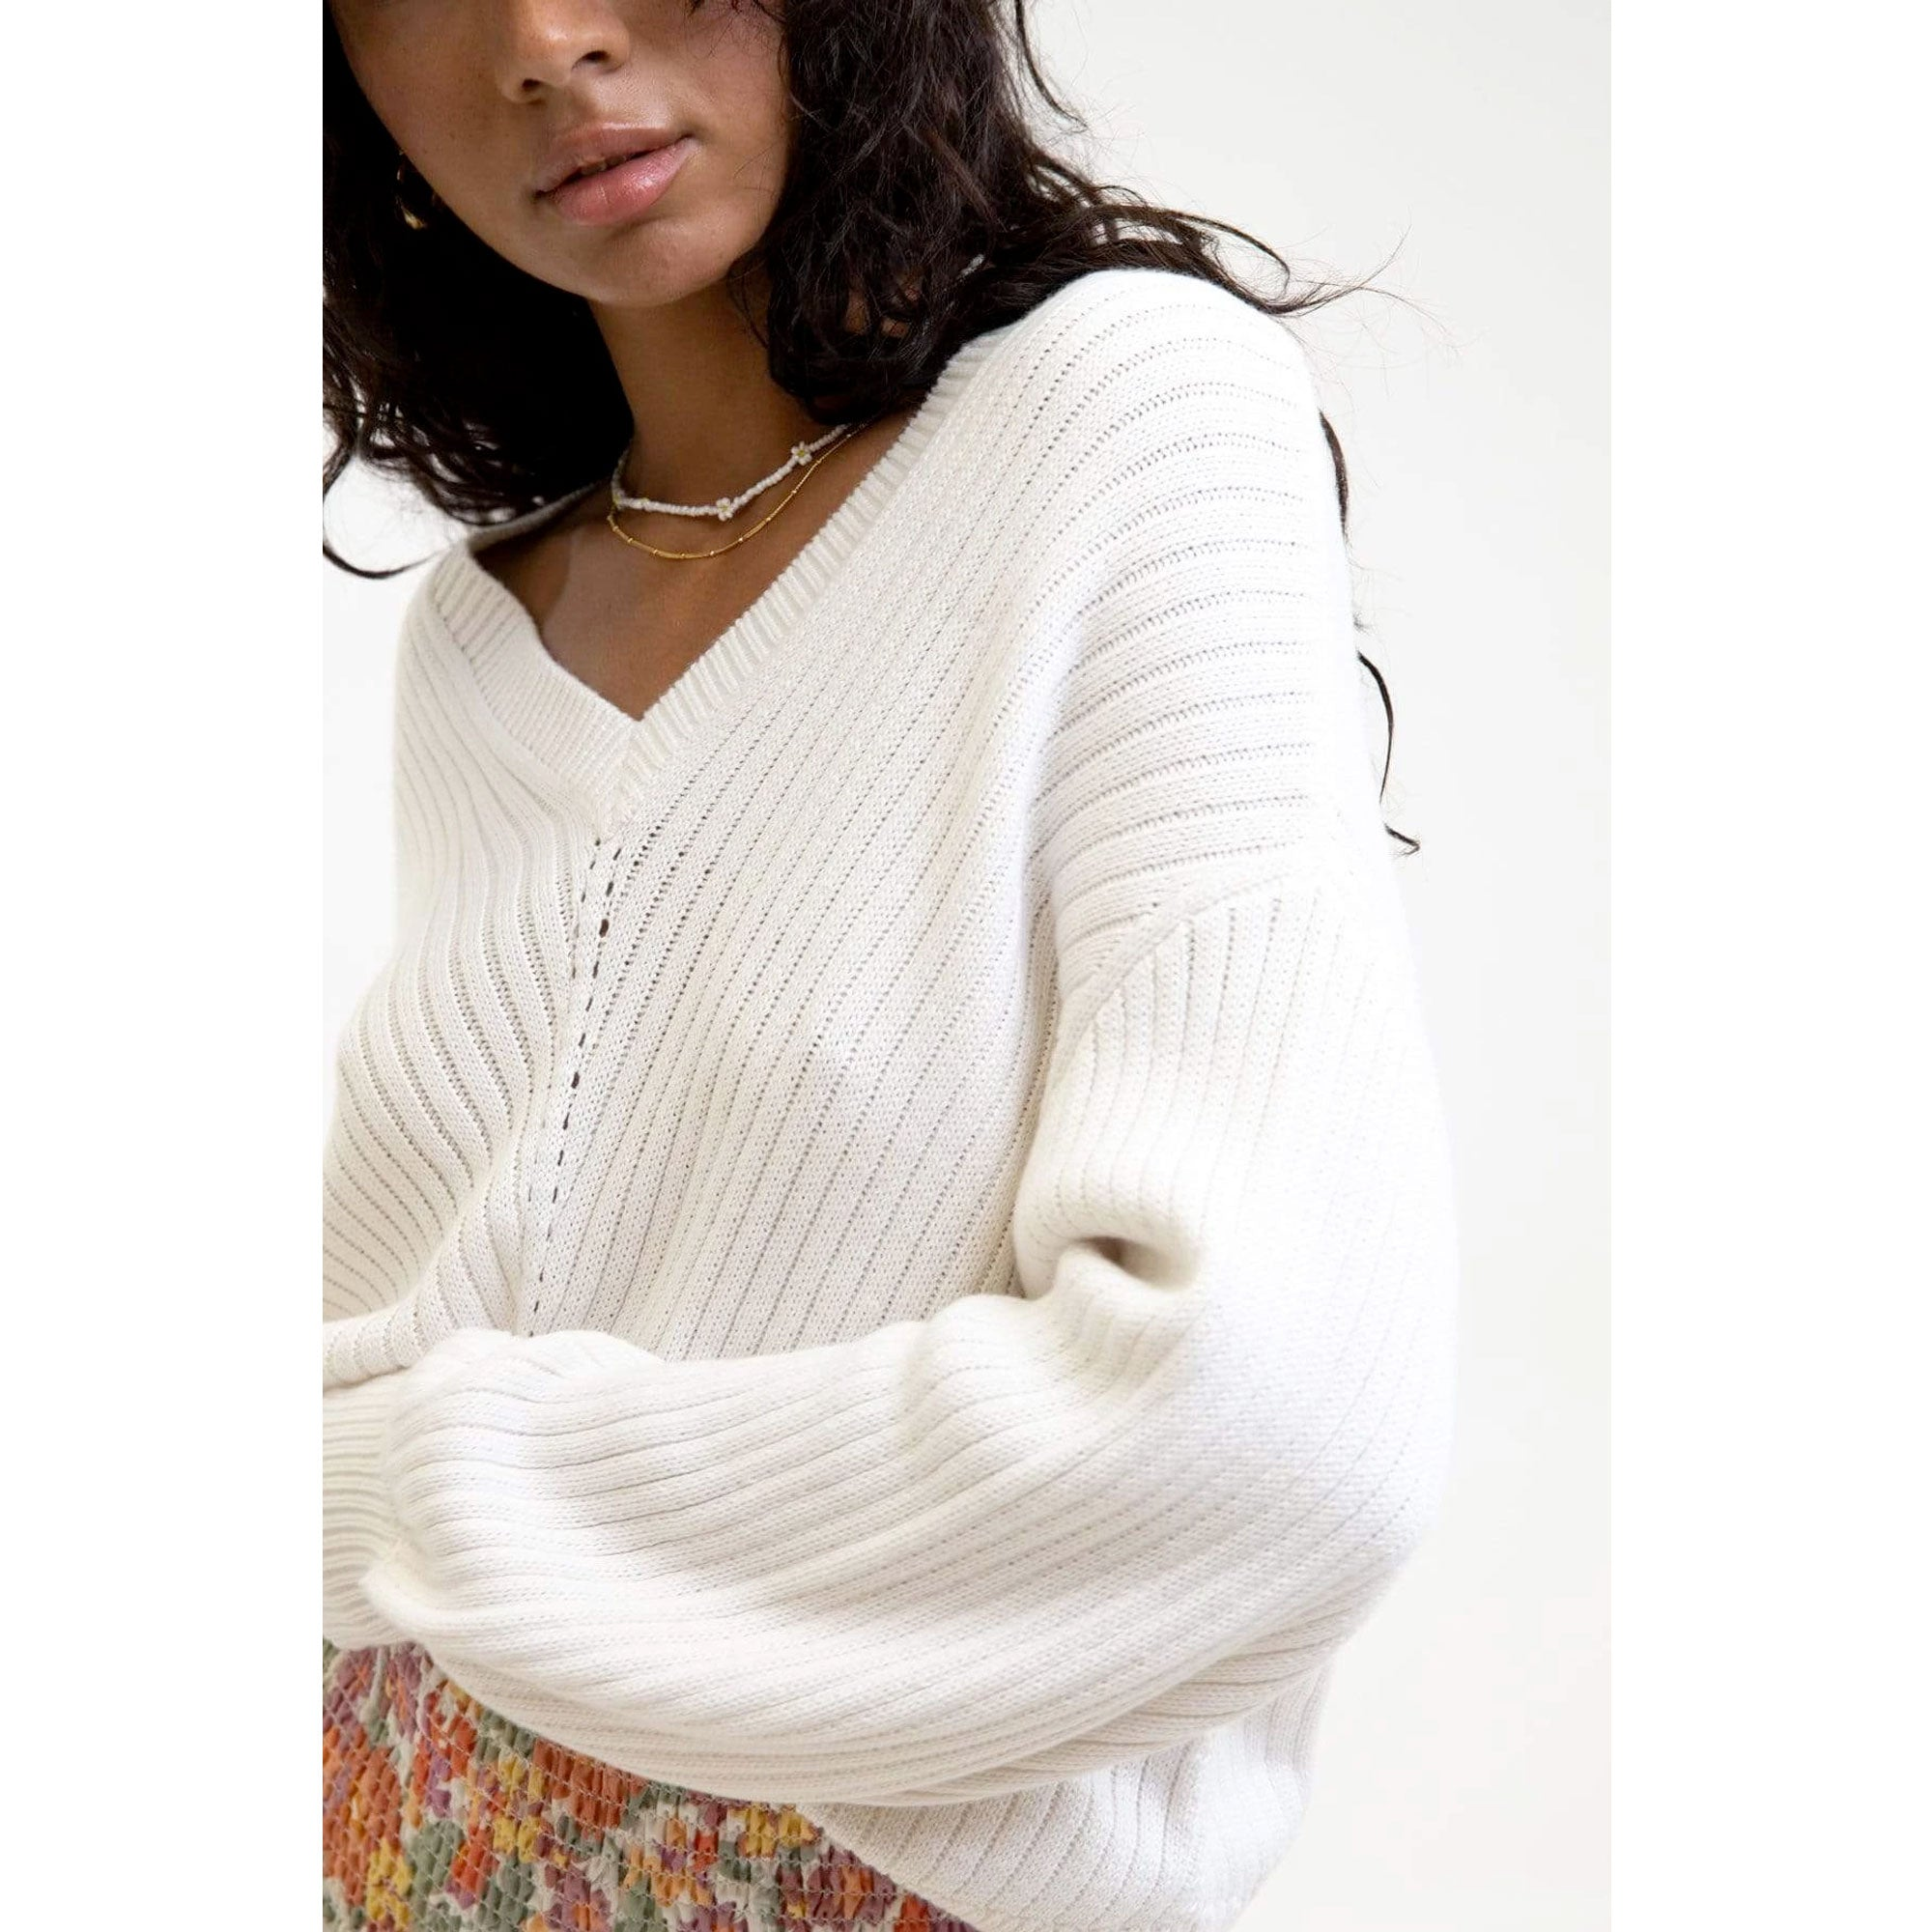 Rhythm Skyline Women's Knit Sweater - White